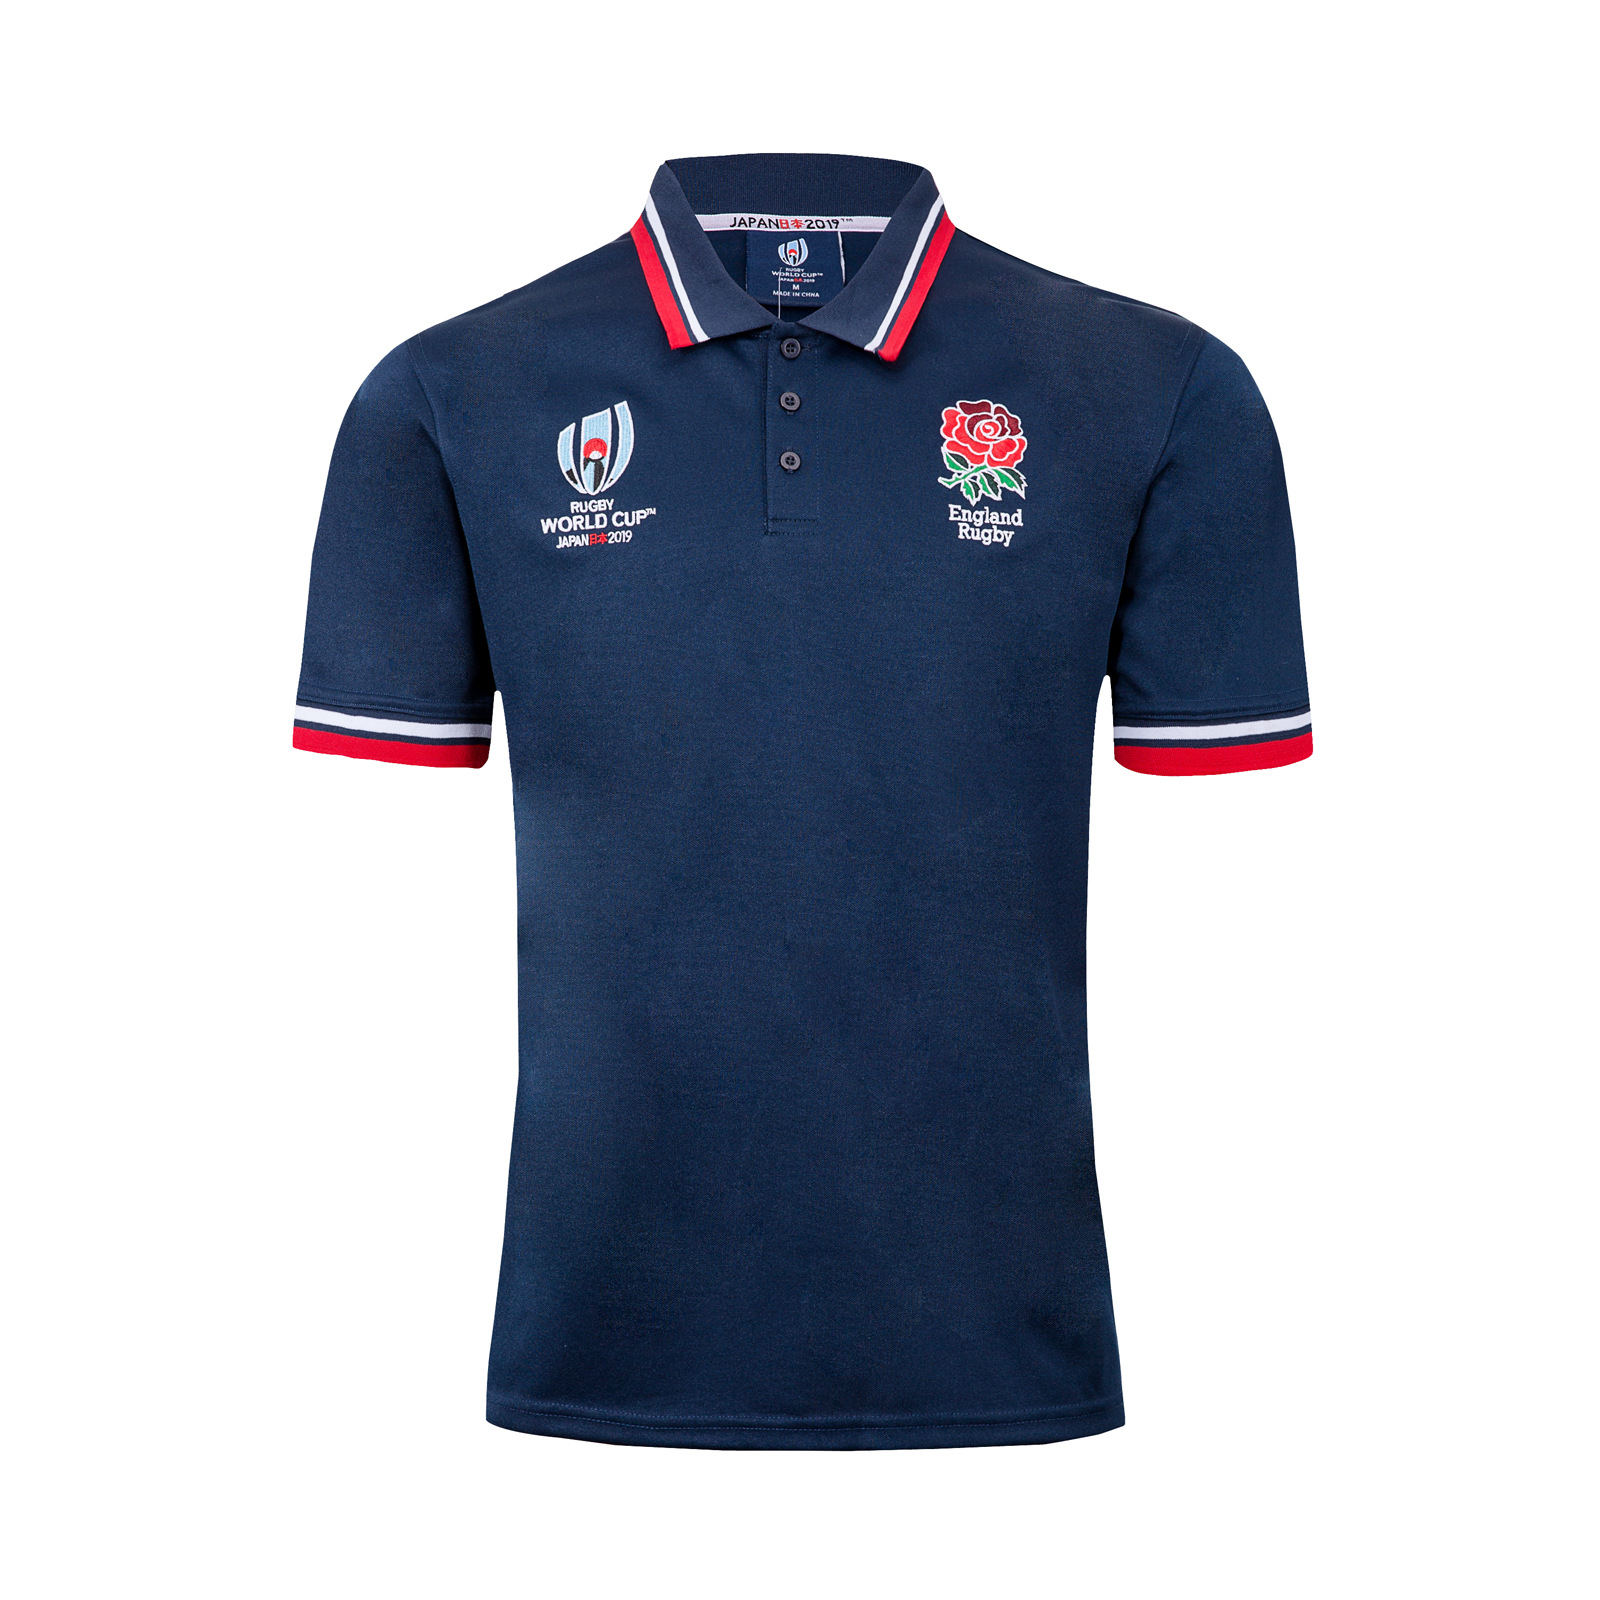 Olive Jersey England Polo 2019 Rugby World Cup England Polo T-Shirt